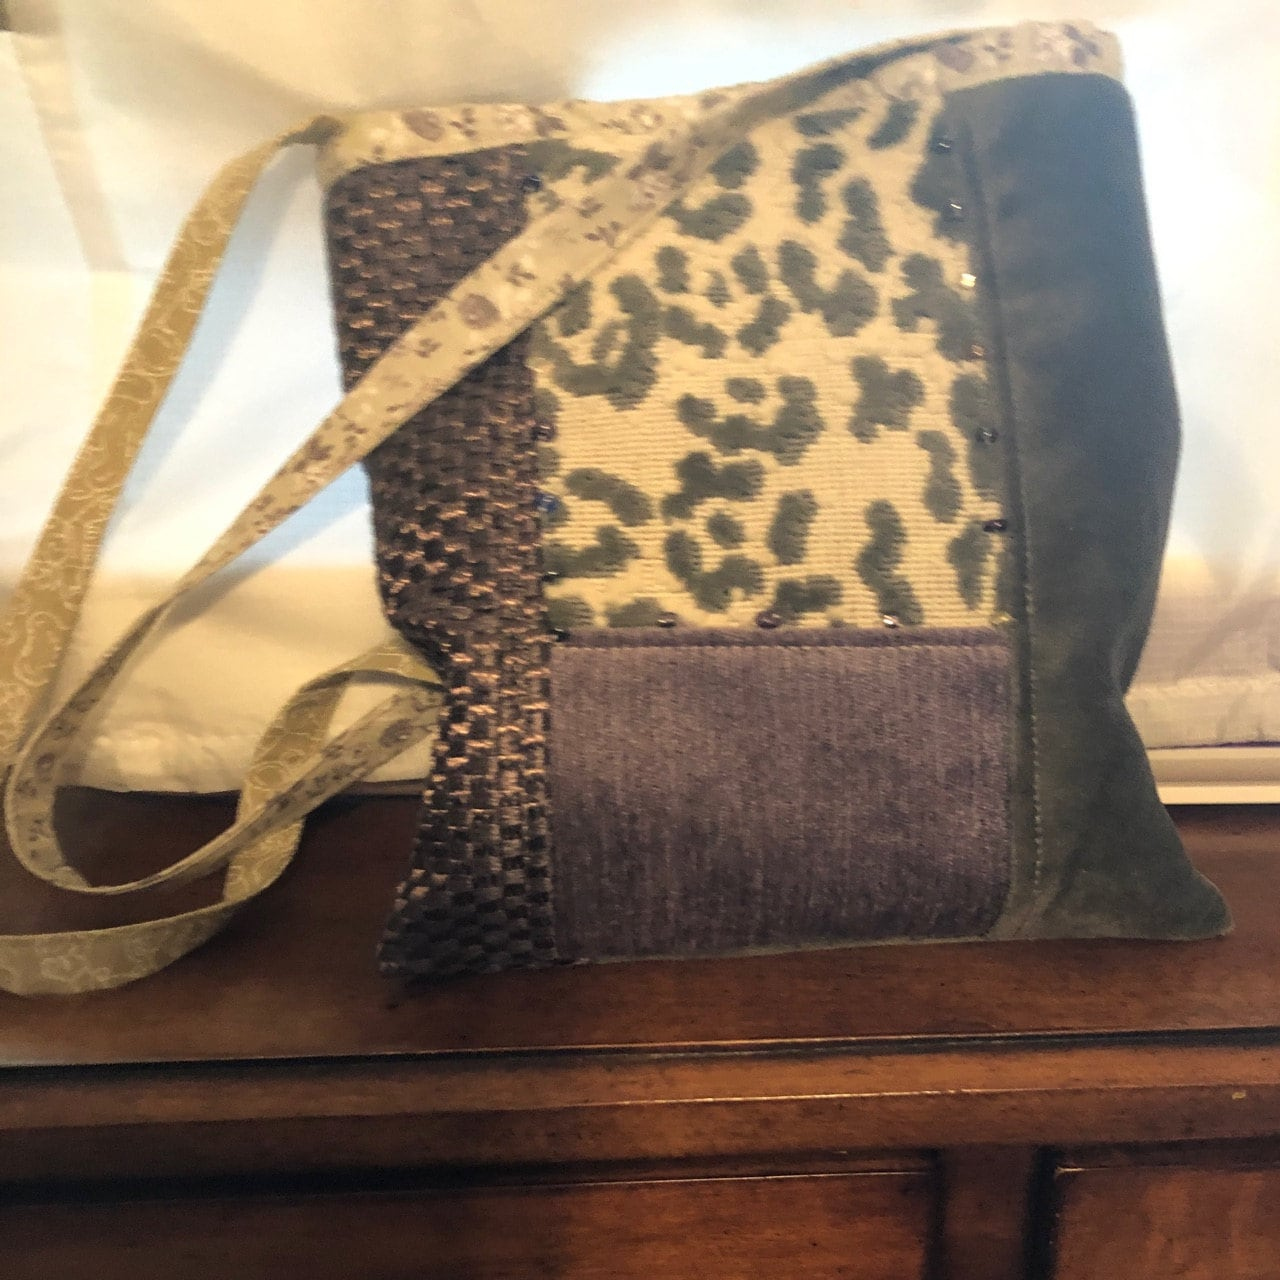 Sally Werk added a photo of their purchase